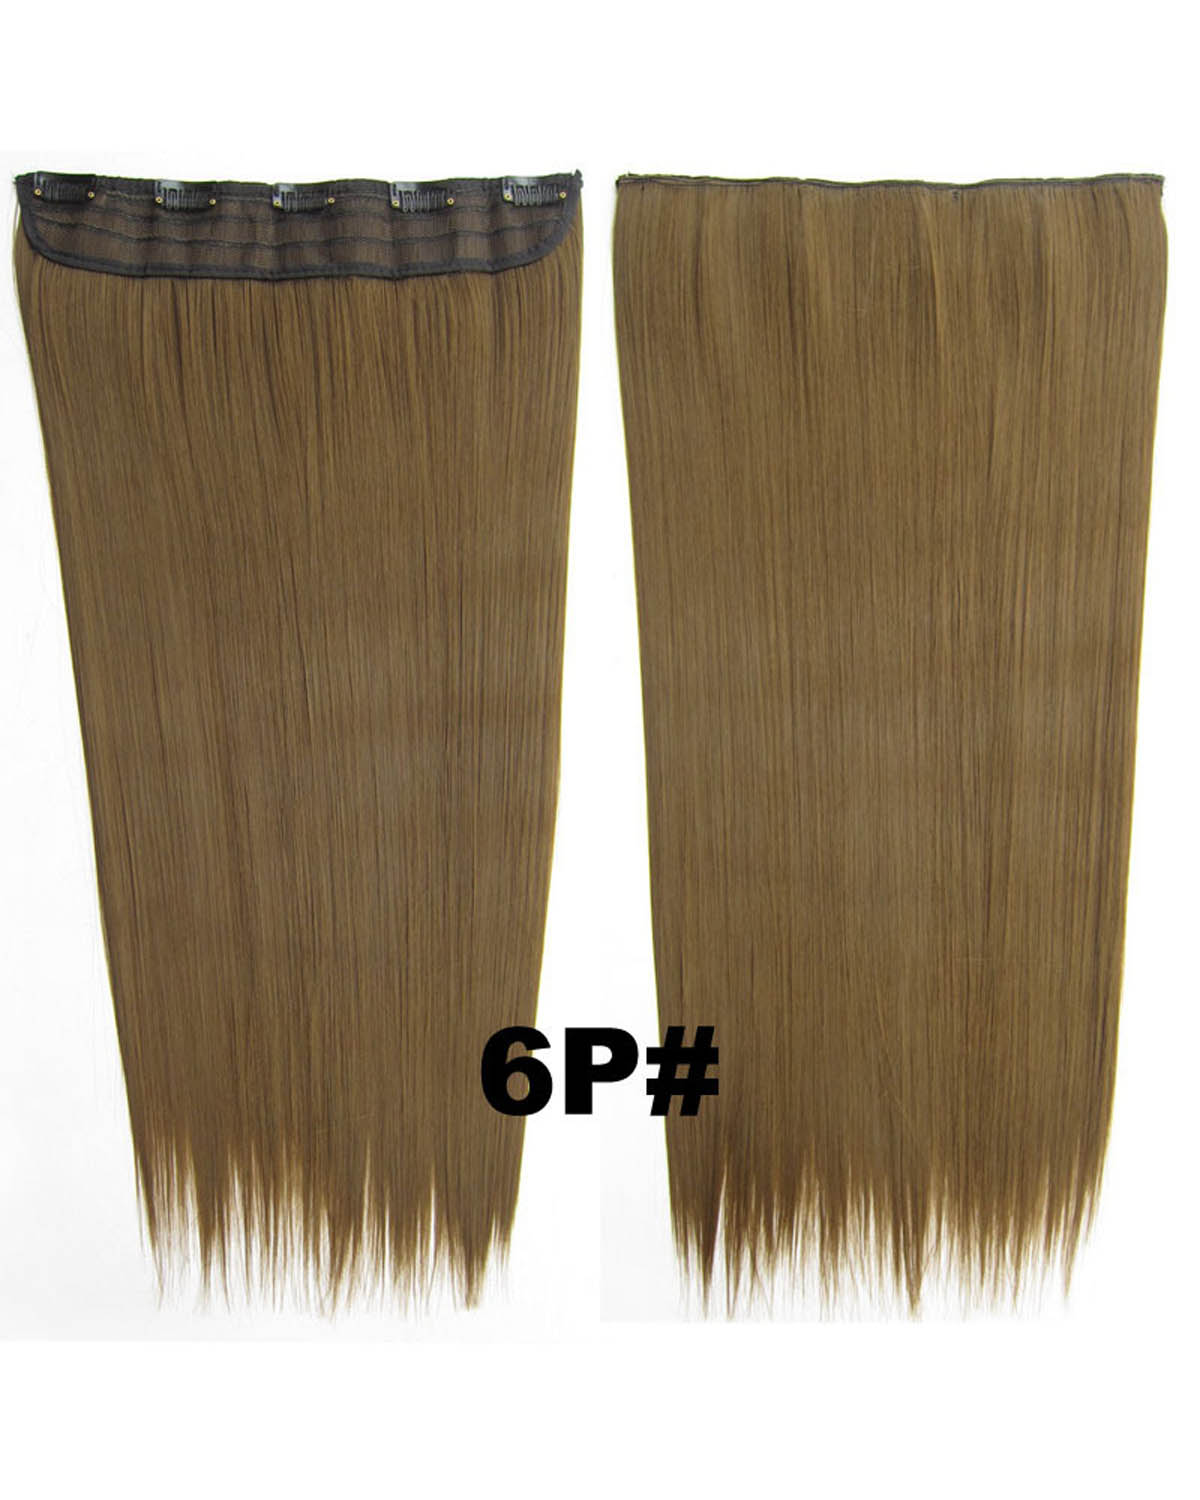 24 Inch Female Fashionable and Clean  Long Straight One Piece 5 Clips Clip in Synthetic Hair Extension 6P#